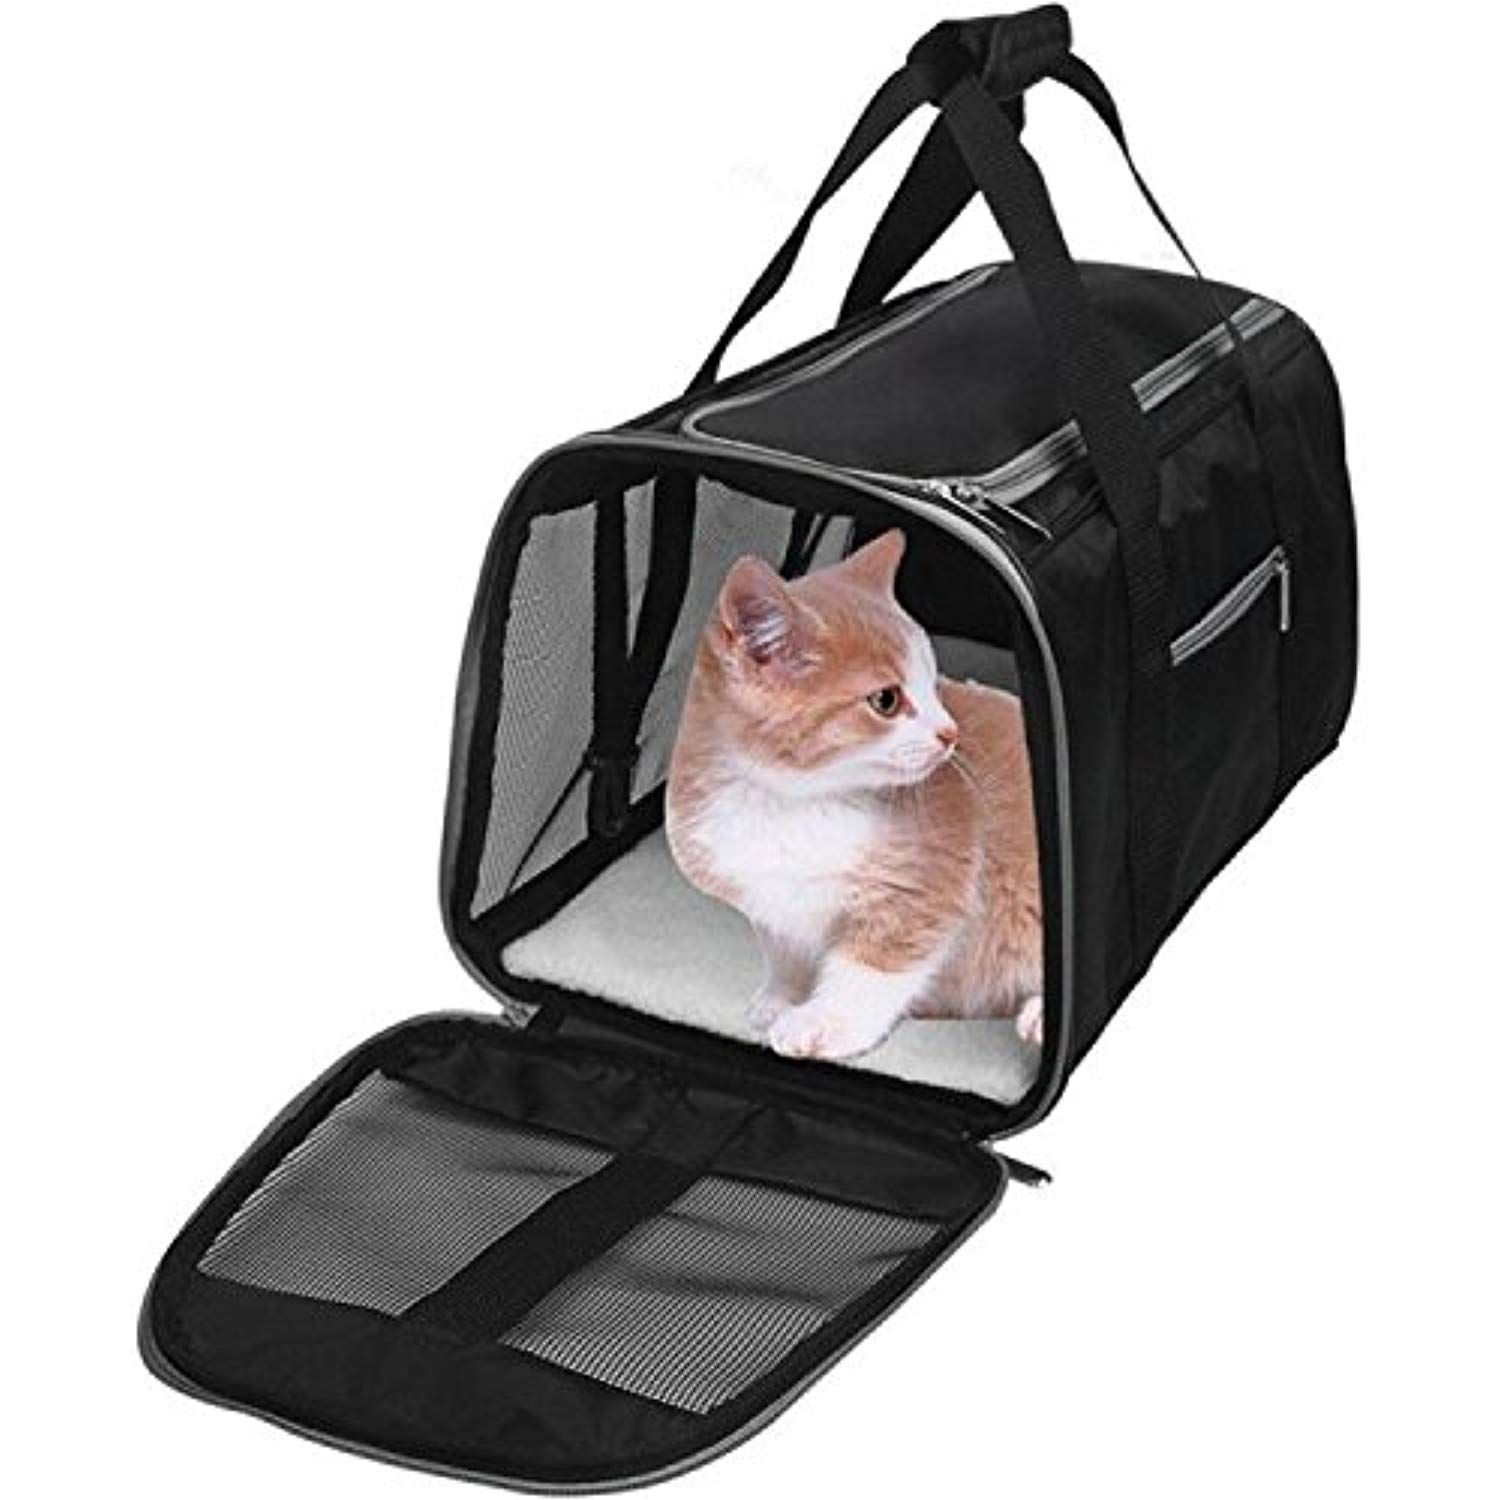 Wopet Deluxe Airline Approved Pet Carrier Dog Carrier And Cat Carrier Fits U Airline Approved Pet Carrier Dogs Airline Approved Pet Carrier Leather Dog Carrier